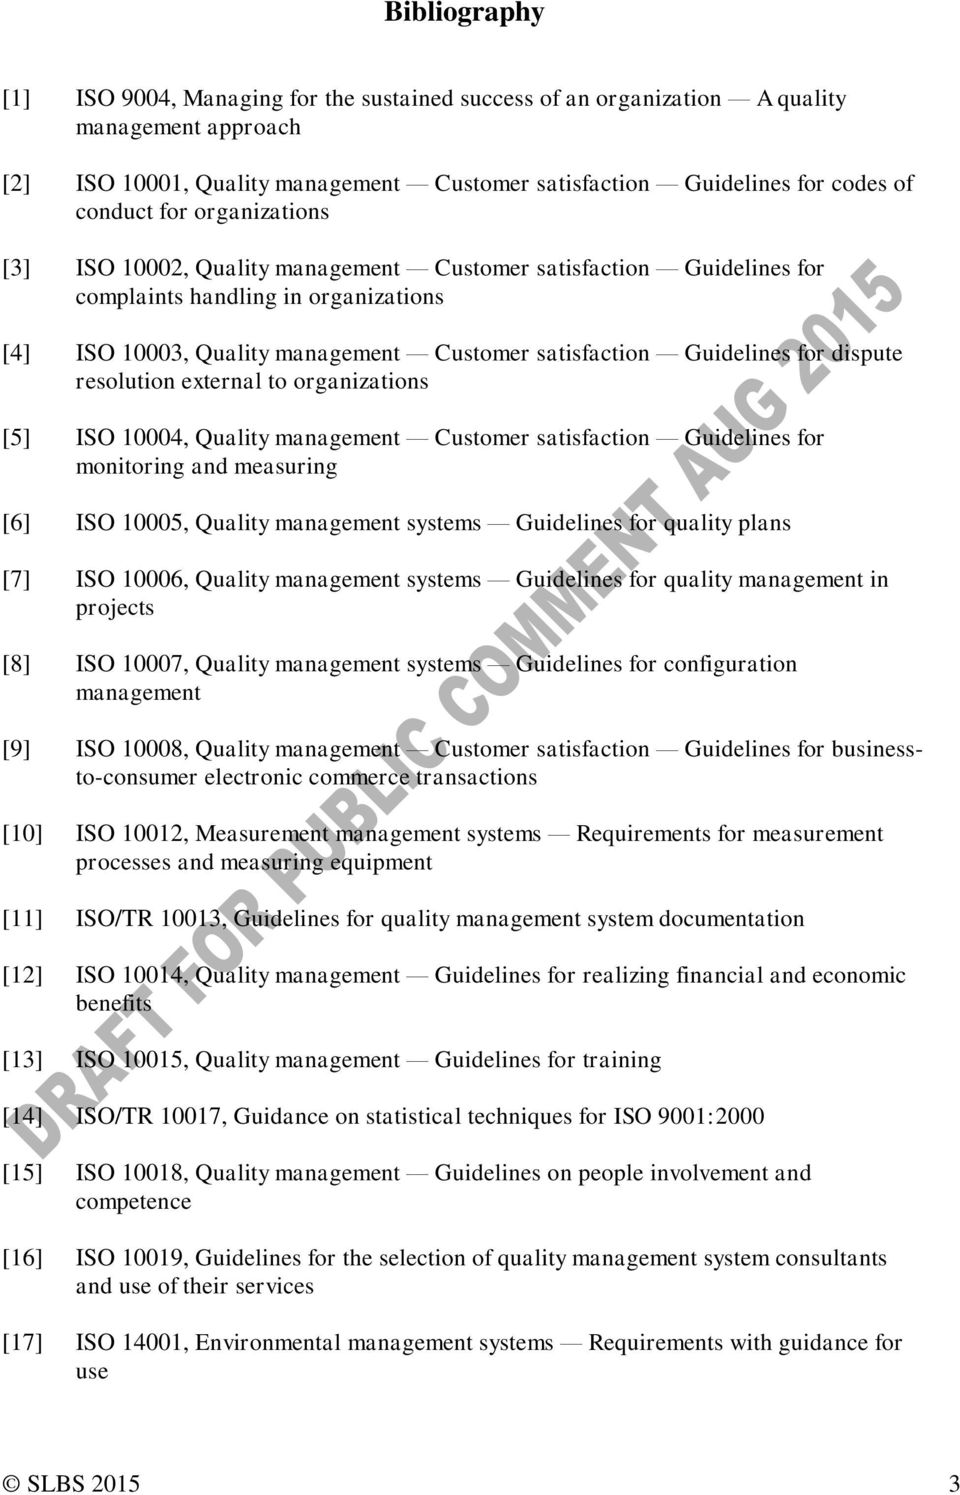 dispute resolution external to organizations [5] ISO 10004, Quality management Customer satisfaction Guidelines for monitoring and measuring [6] ISO 10005, Quality management systems Guidelines for